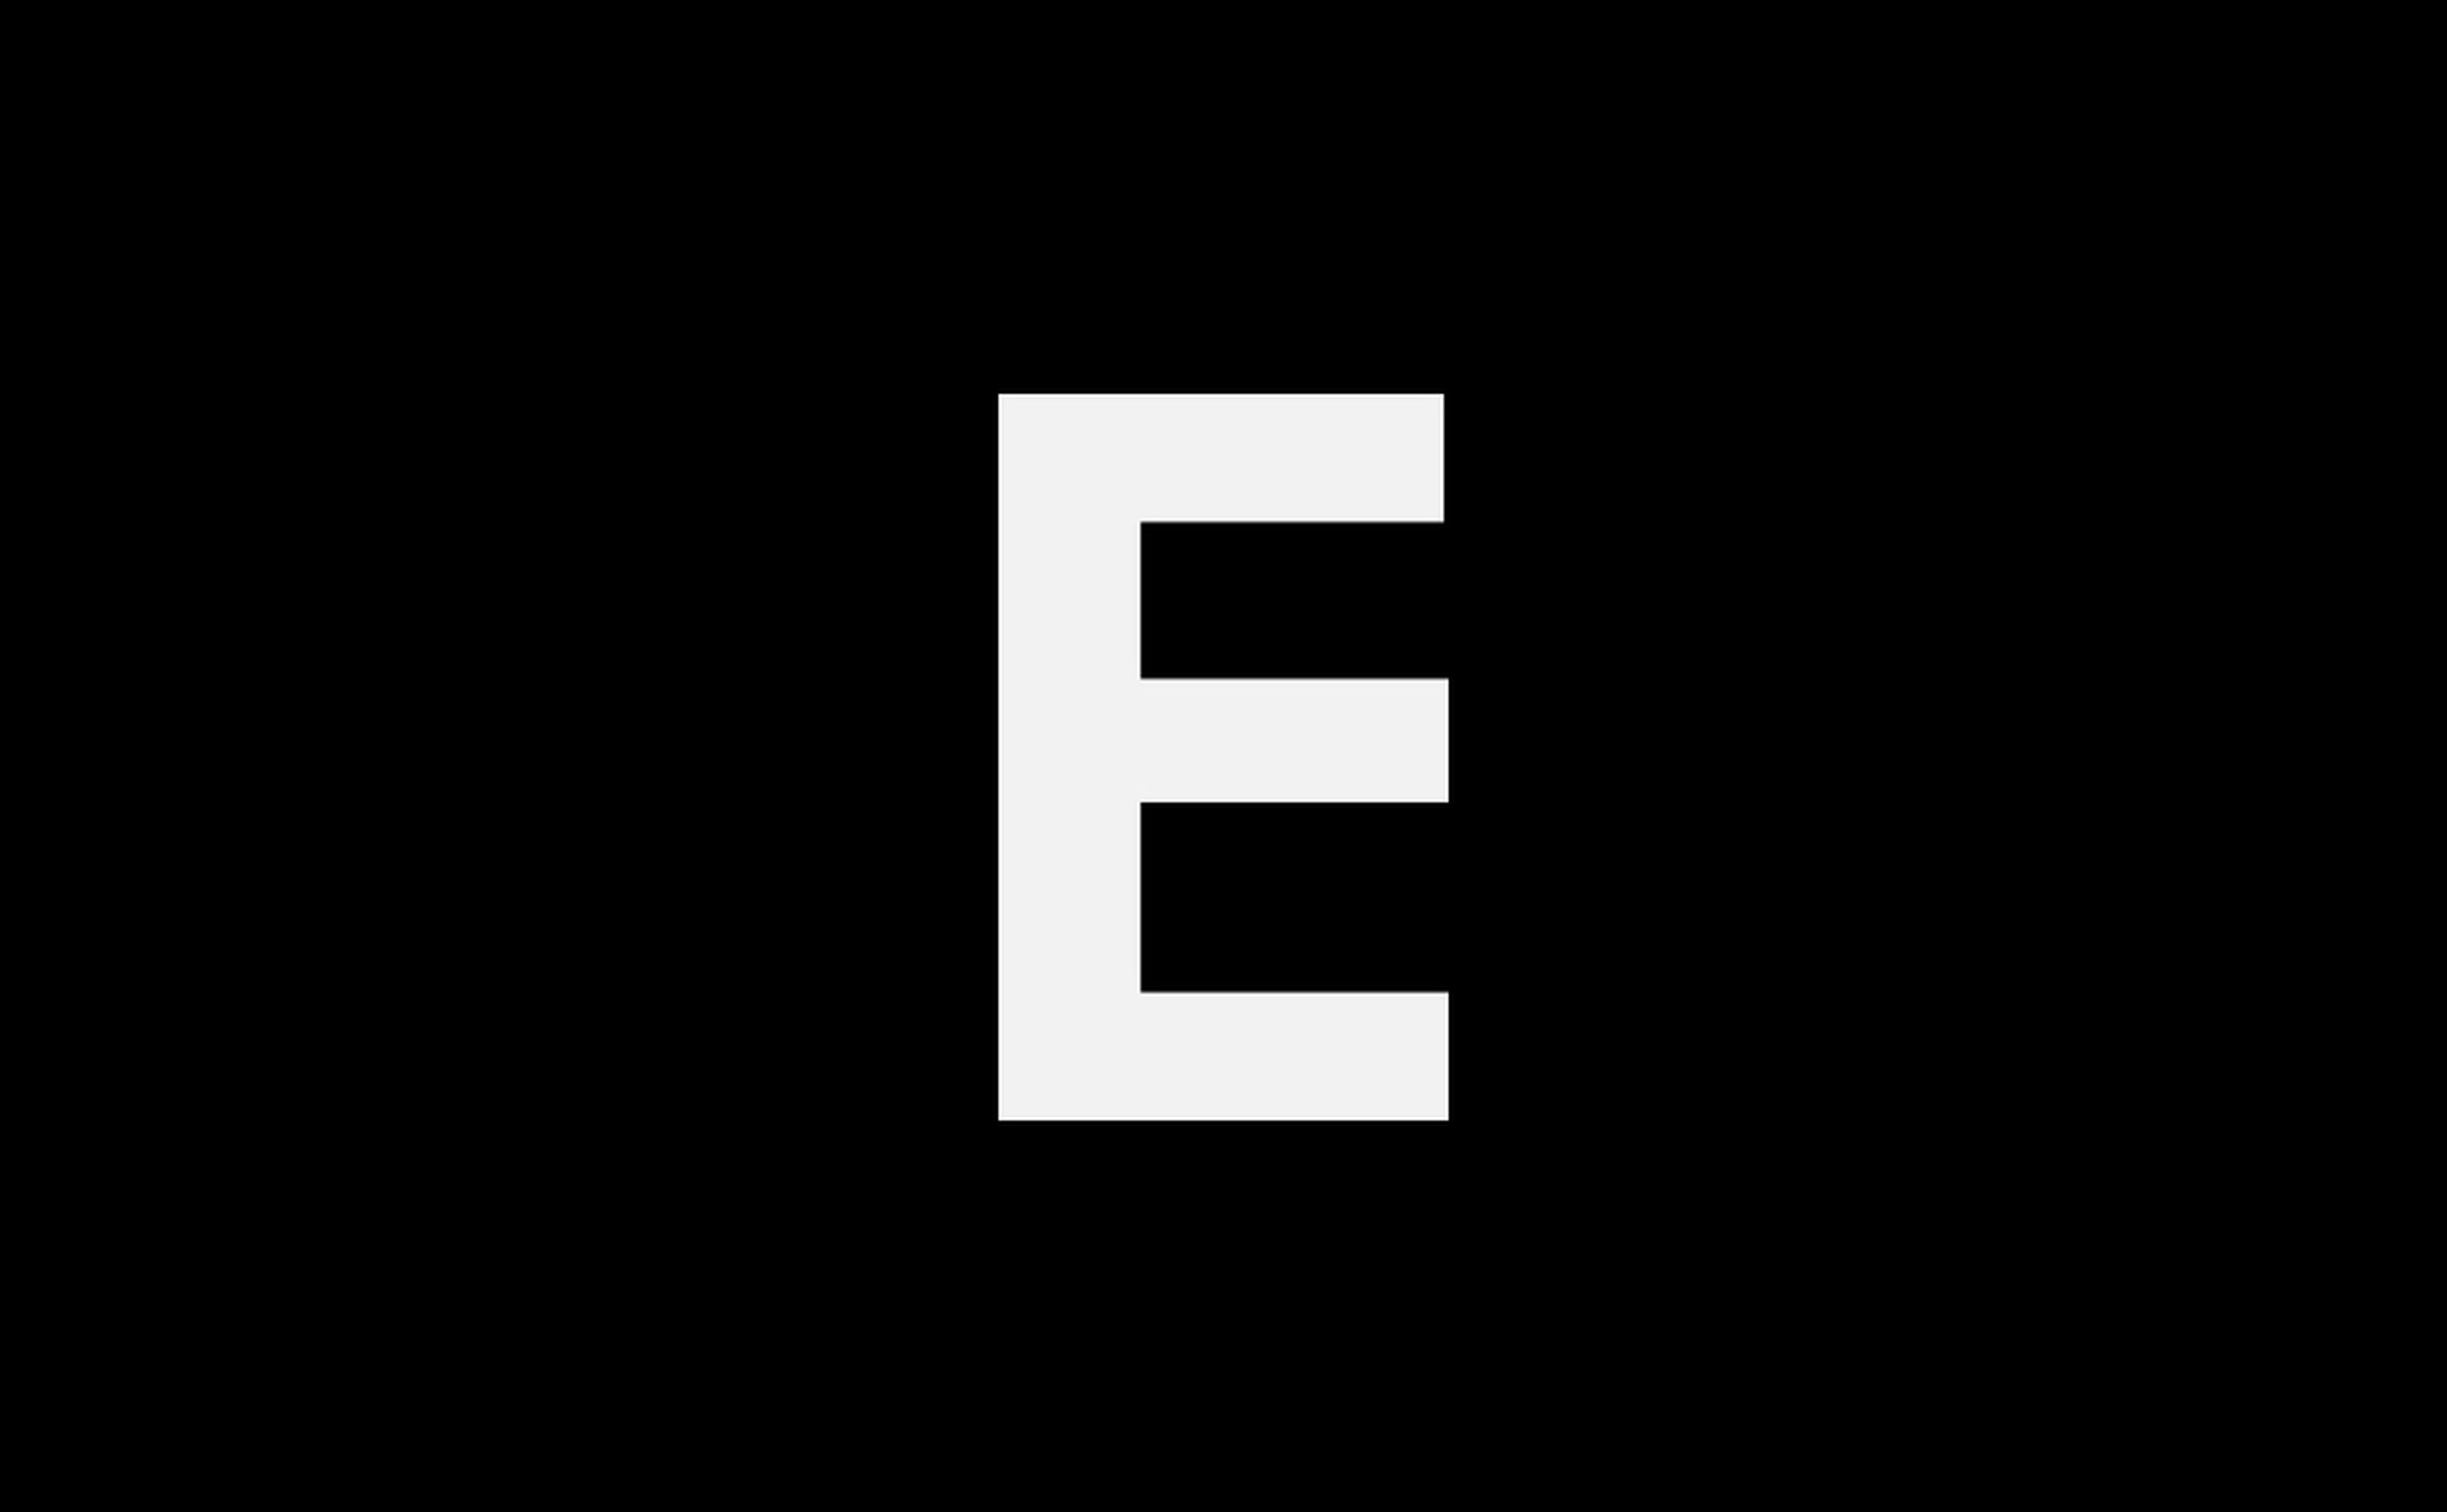 EXTERIOR OF OLD HOUSE WITH RED STRUCTURE